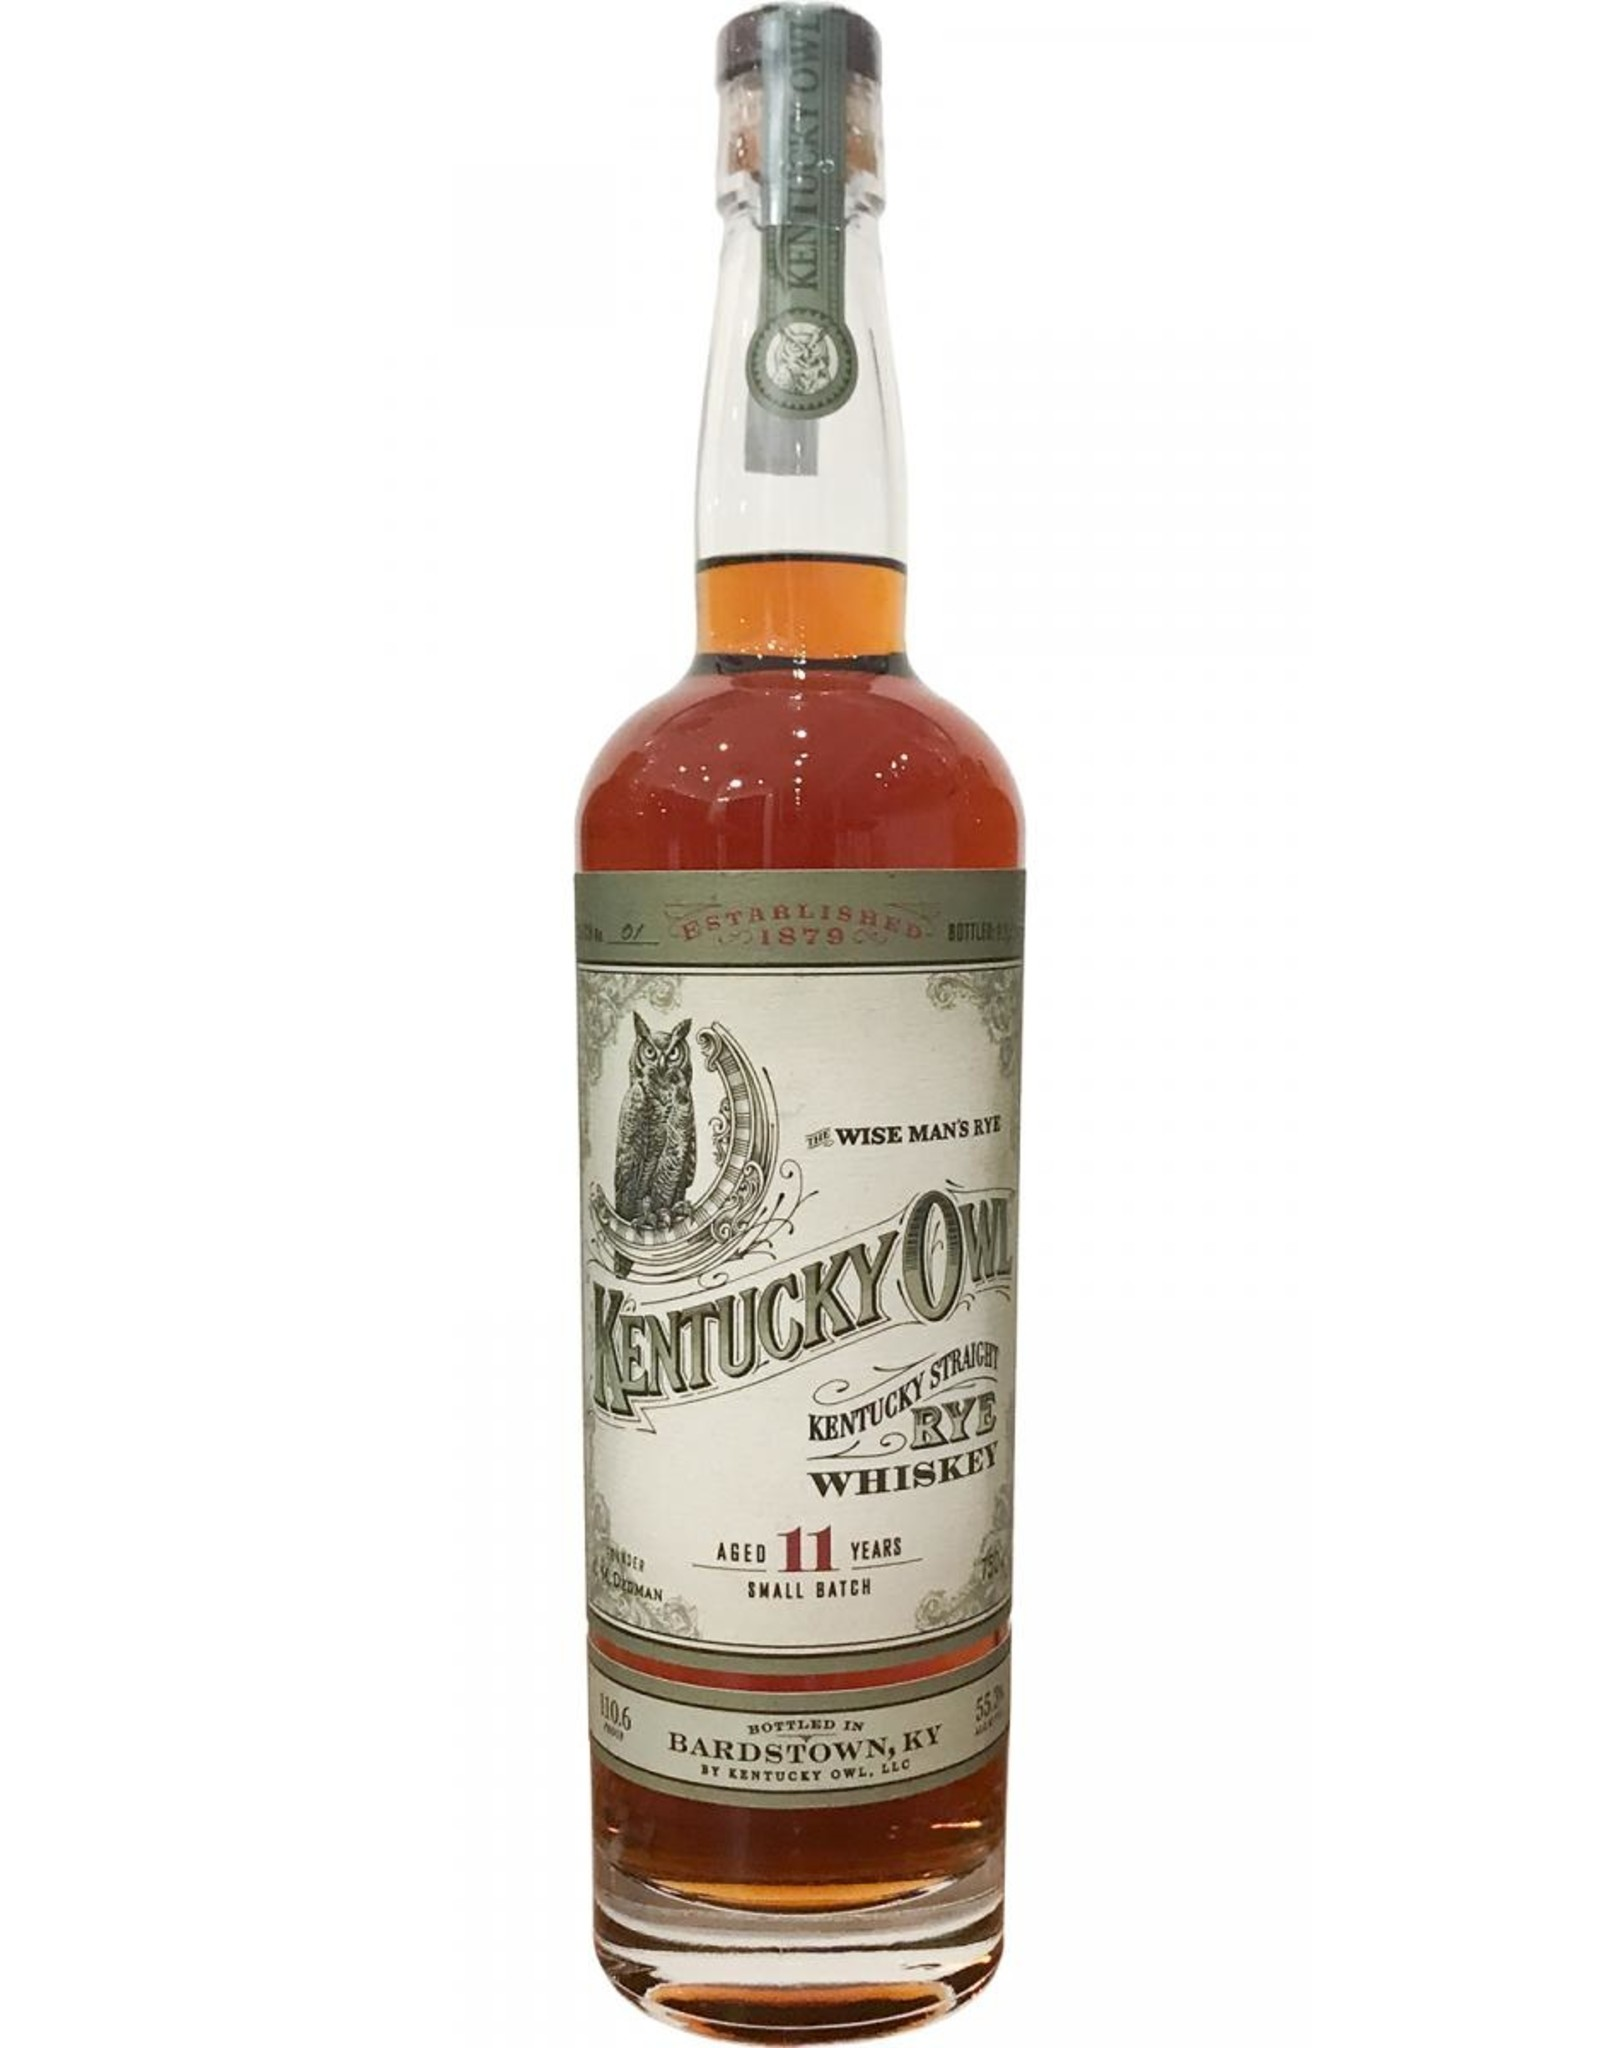 Kentucky Owl Rye Whiskey 11 Year